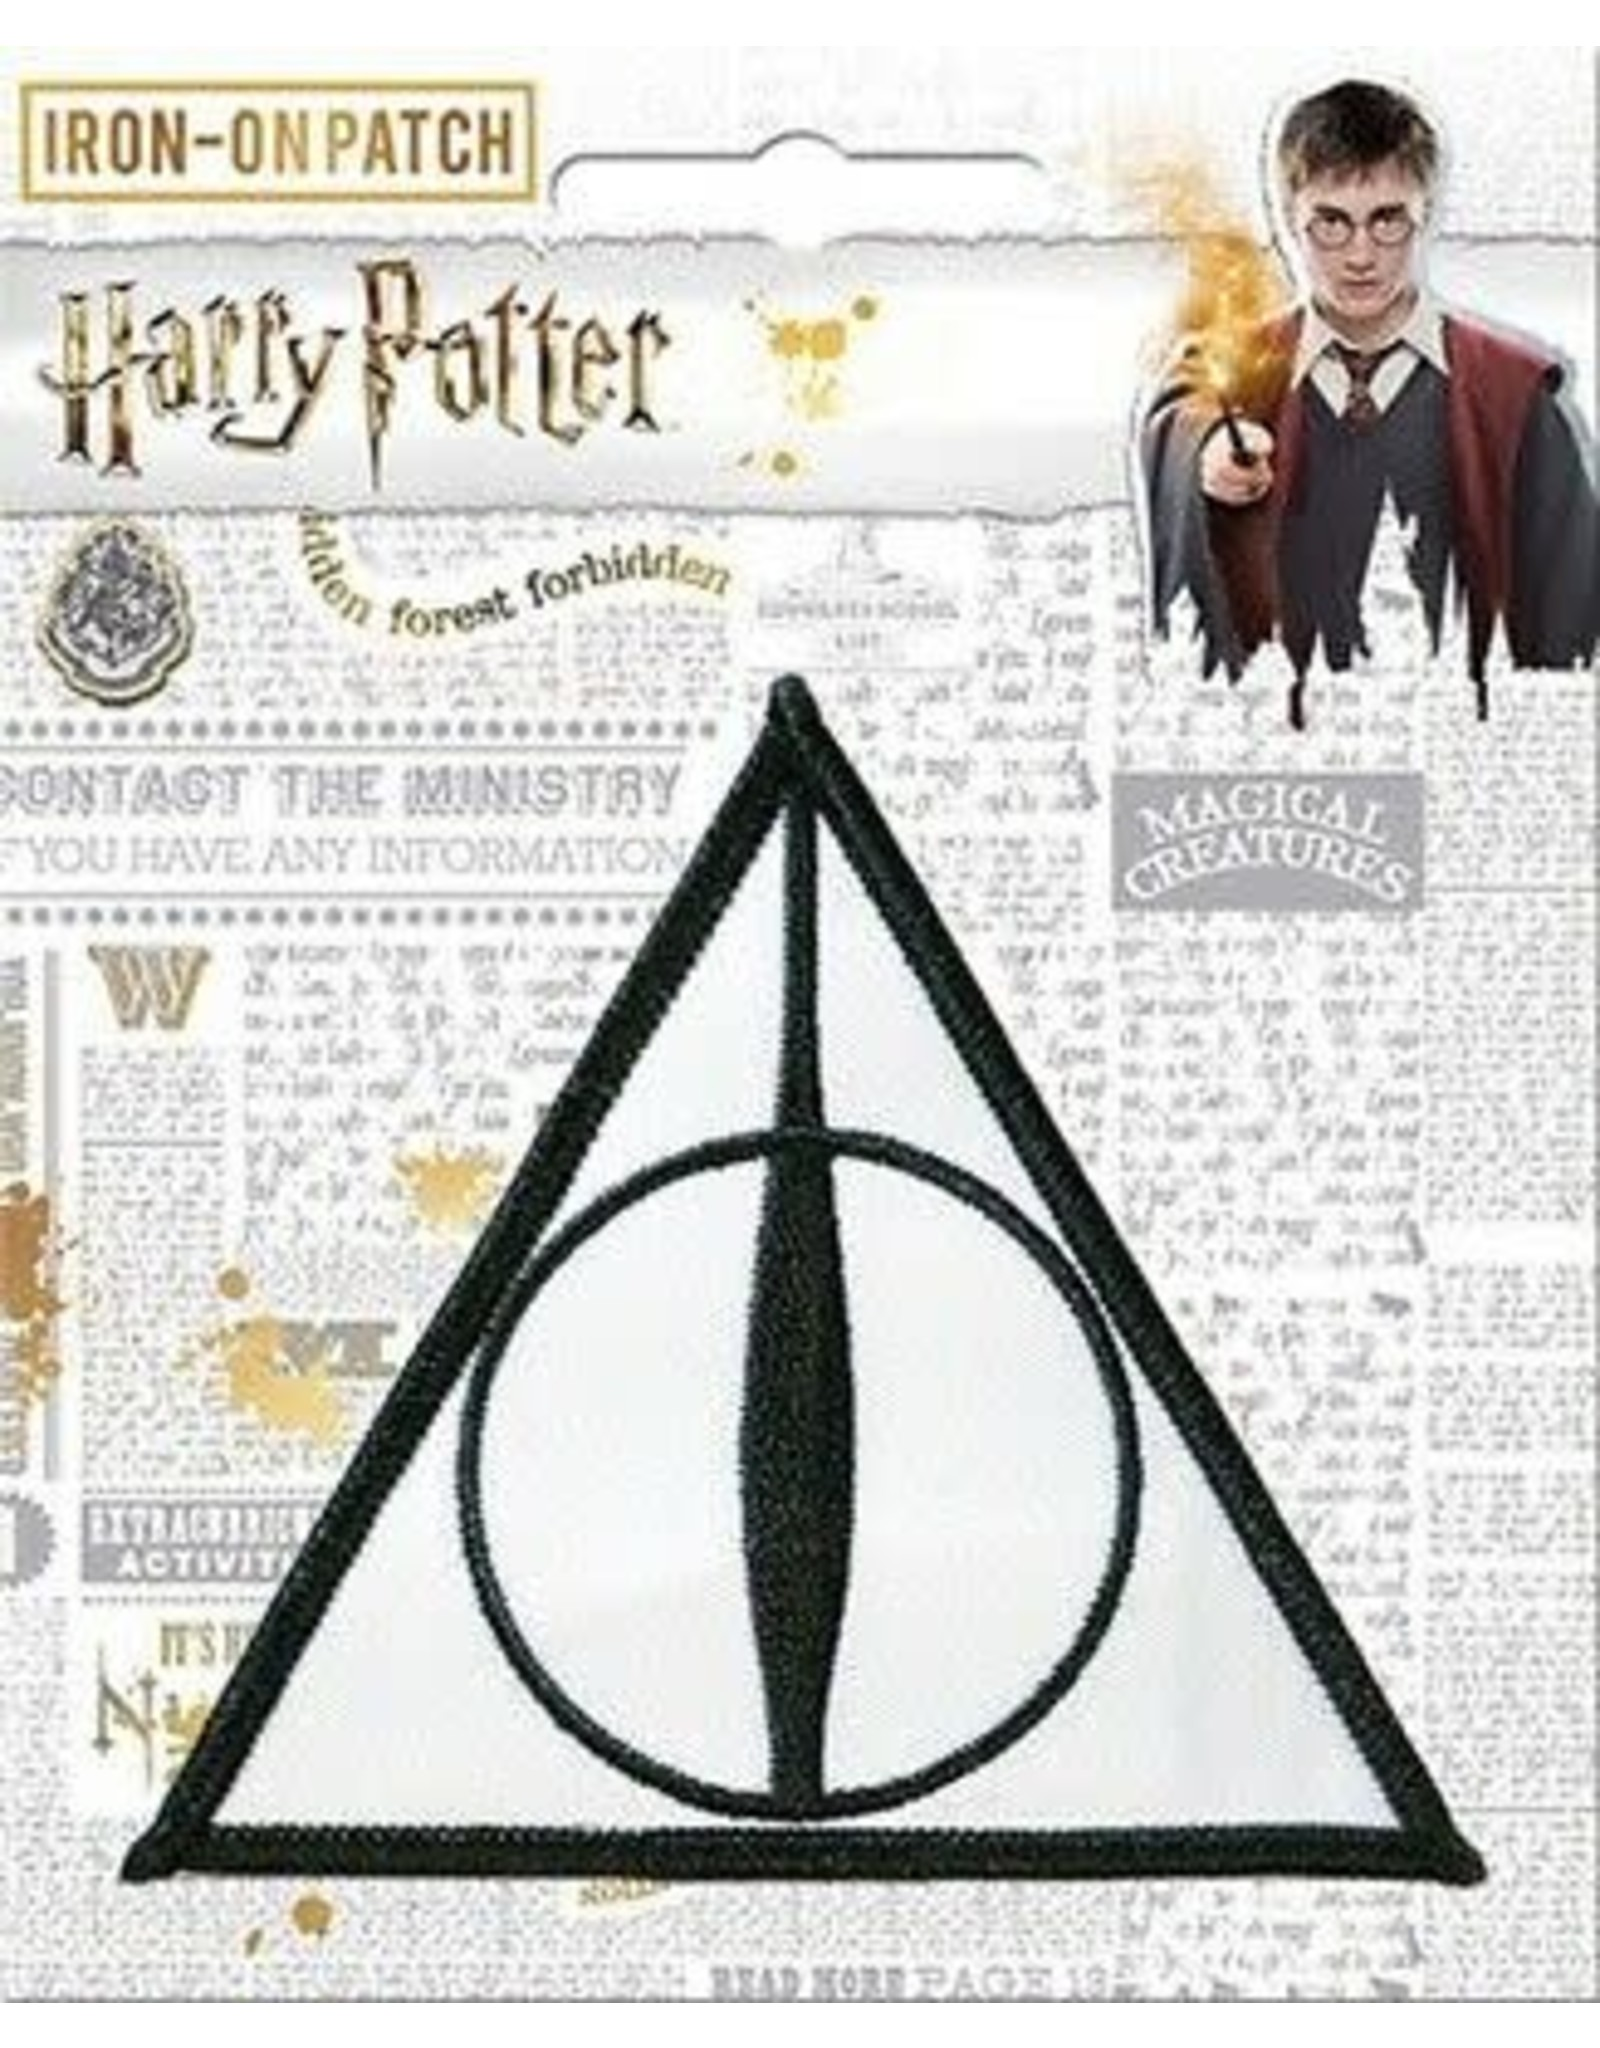 La Licornerie Harry Potter Deathly Hallows Iron-On Patch